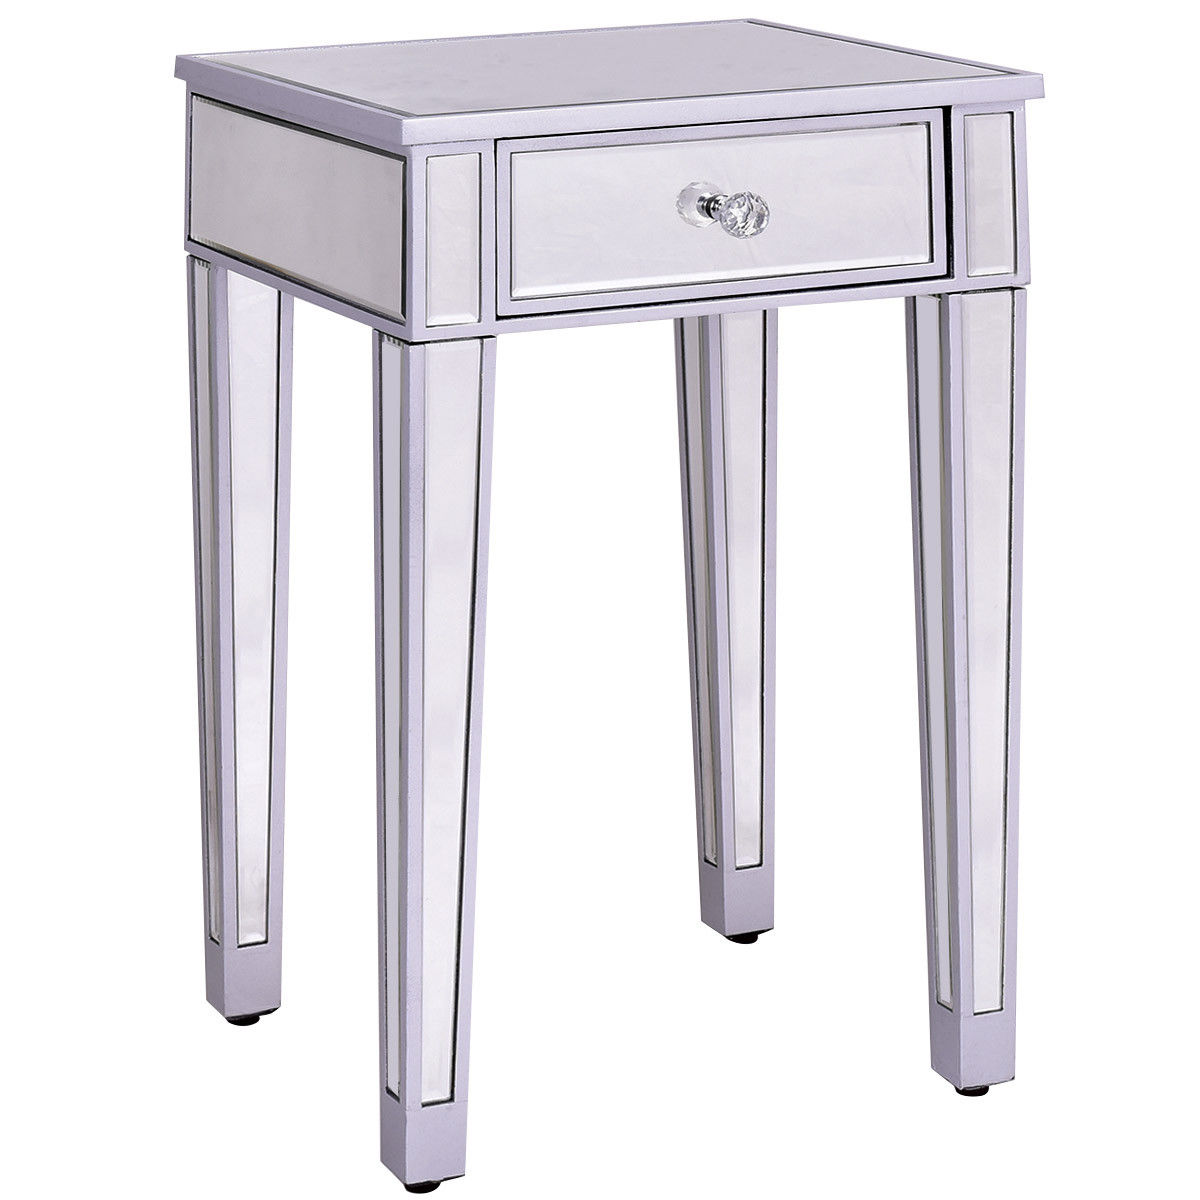 Costway Mirrored Accent Table Nightstand End Table Bedside Storage Cabinet Drawer